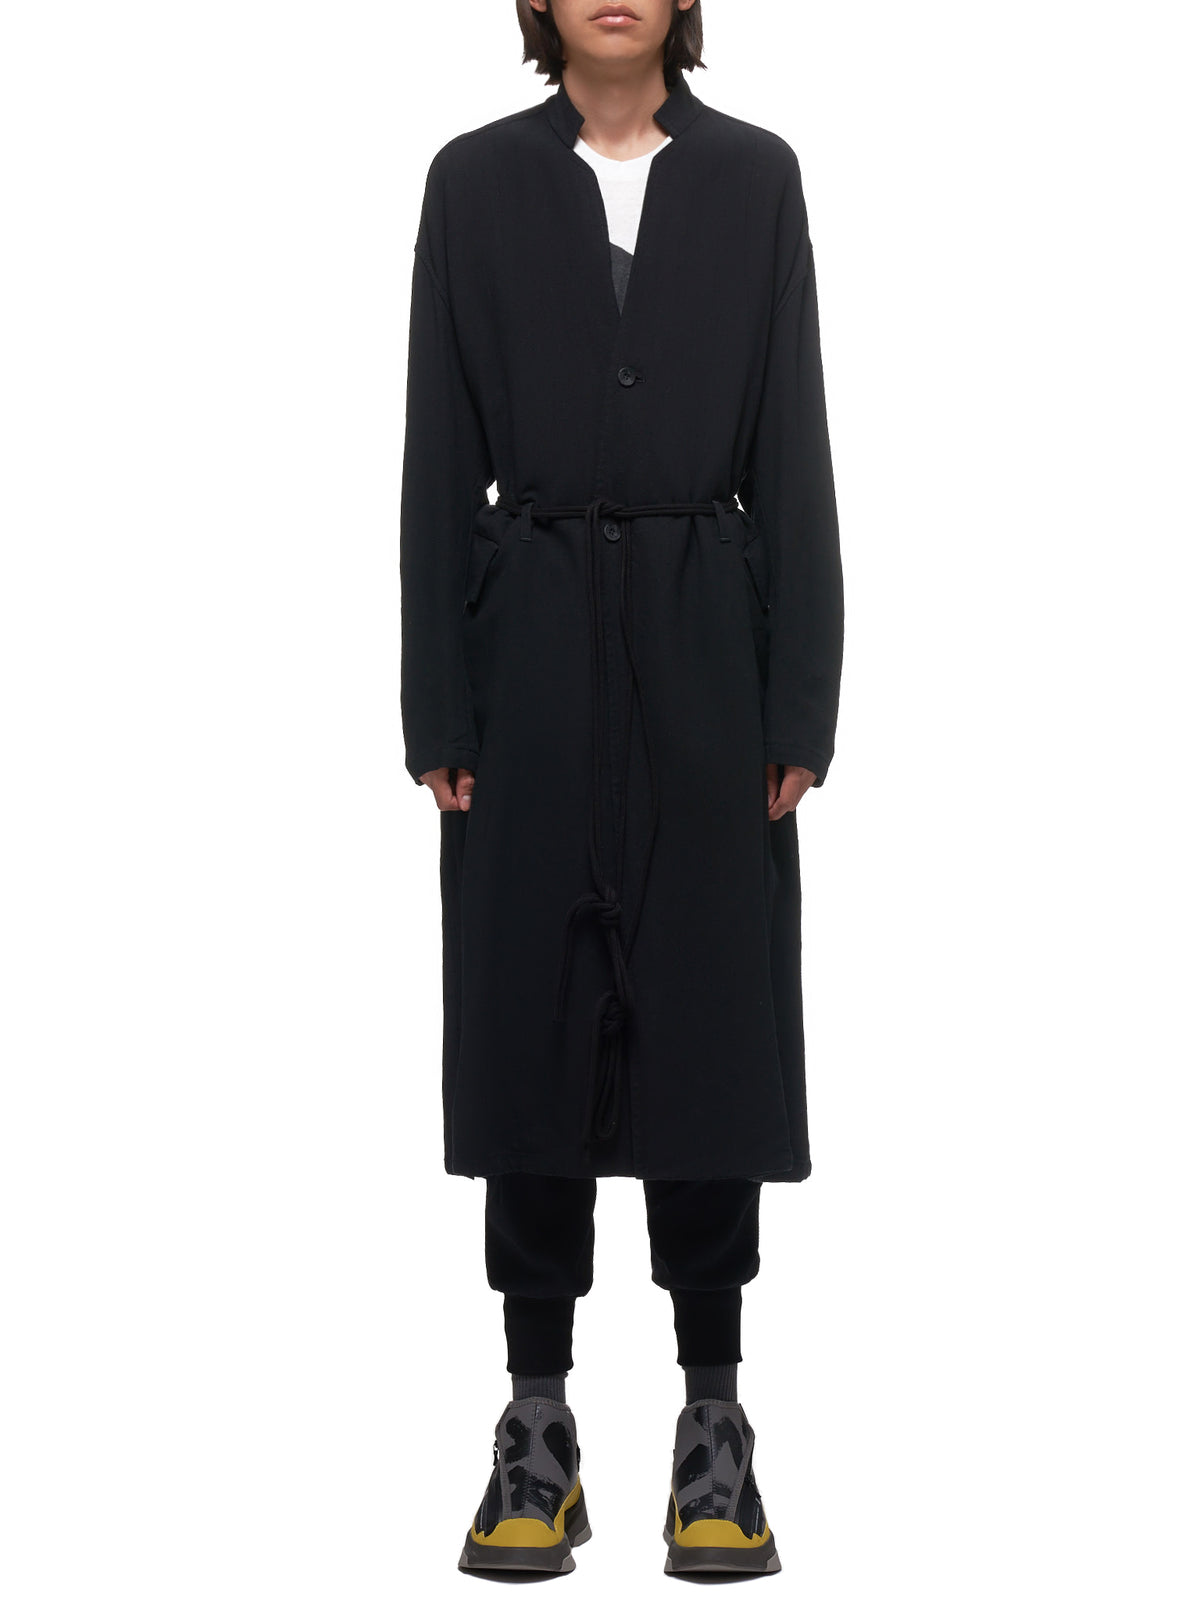 Duster Coat (697JAM1-BLACK)